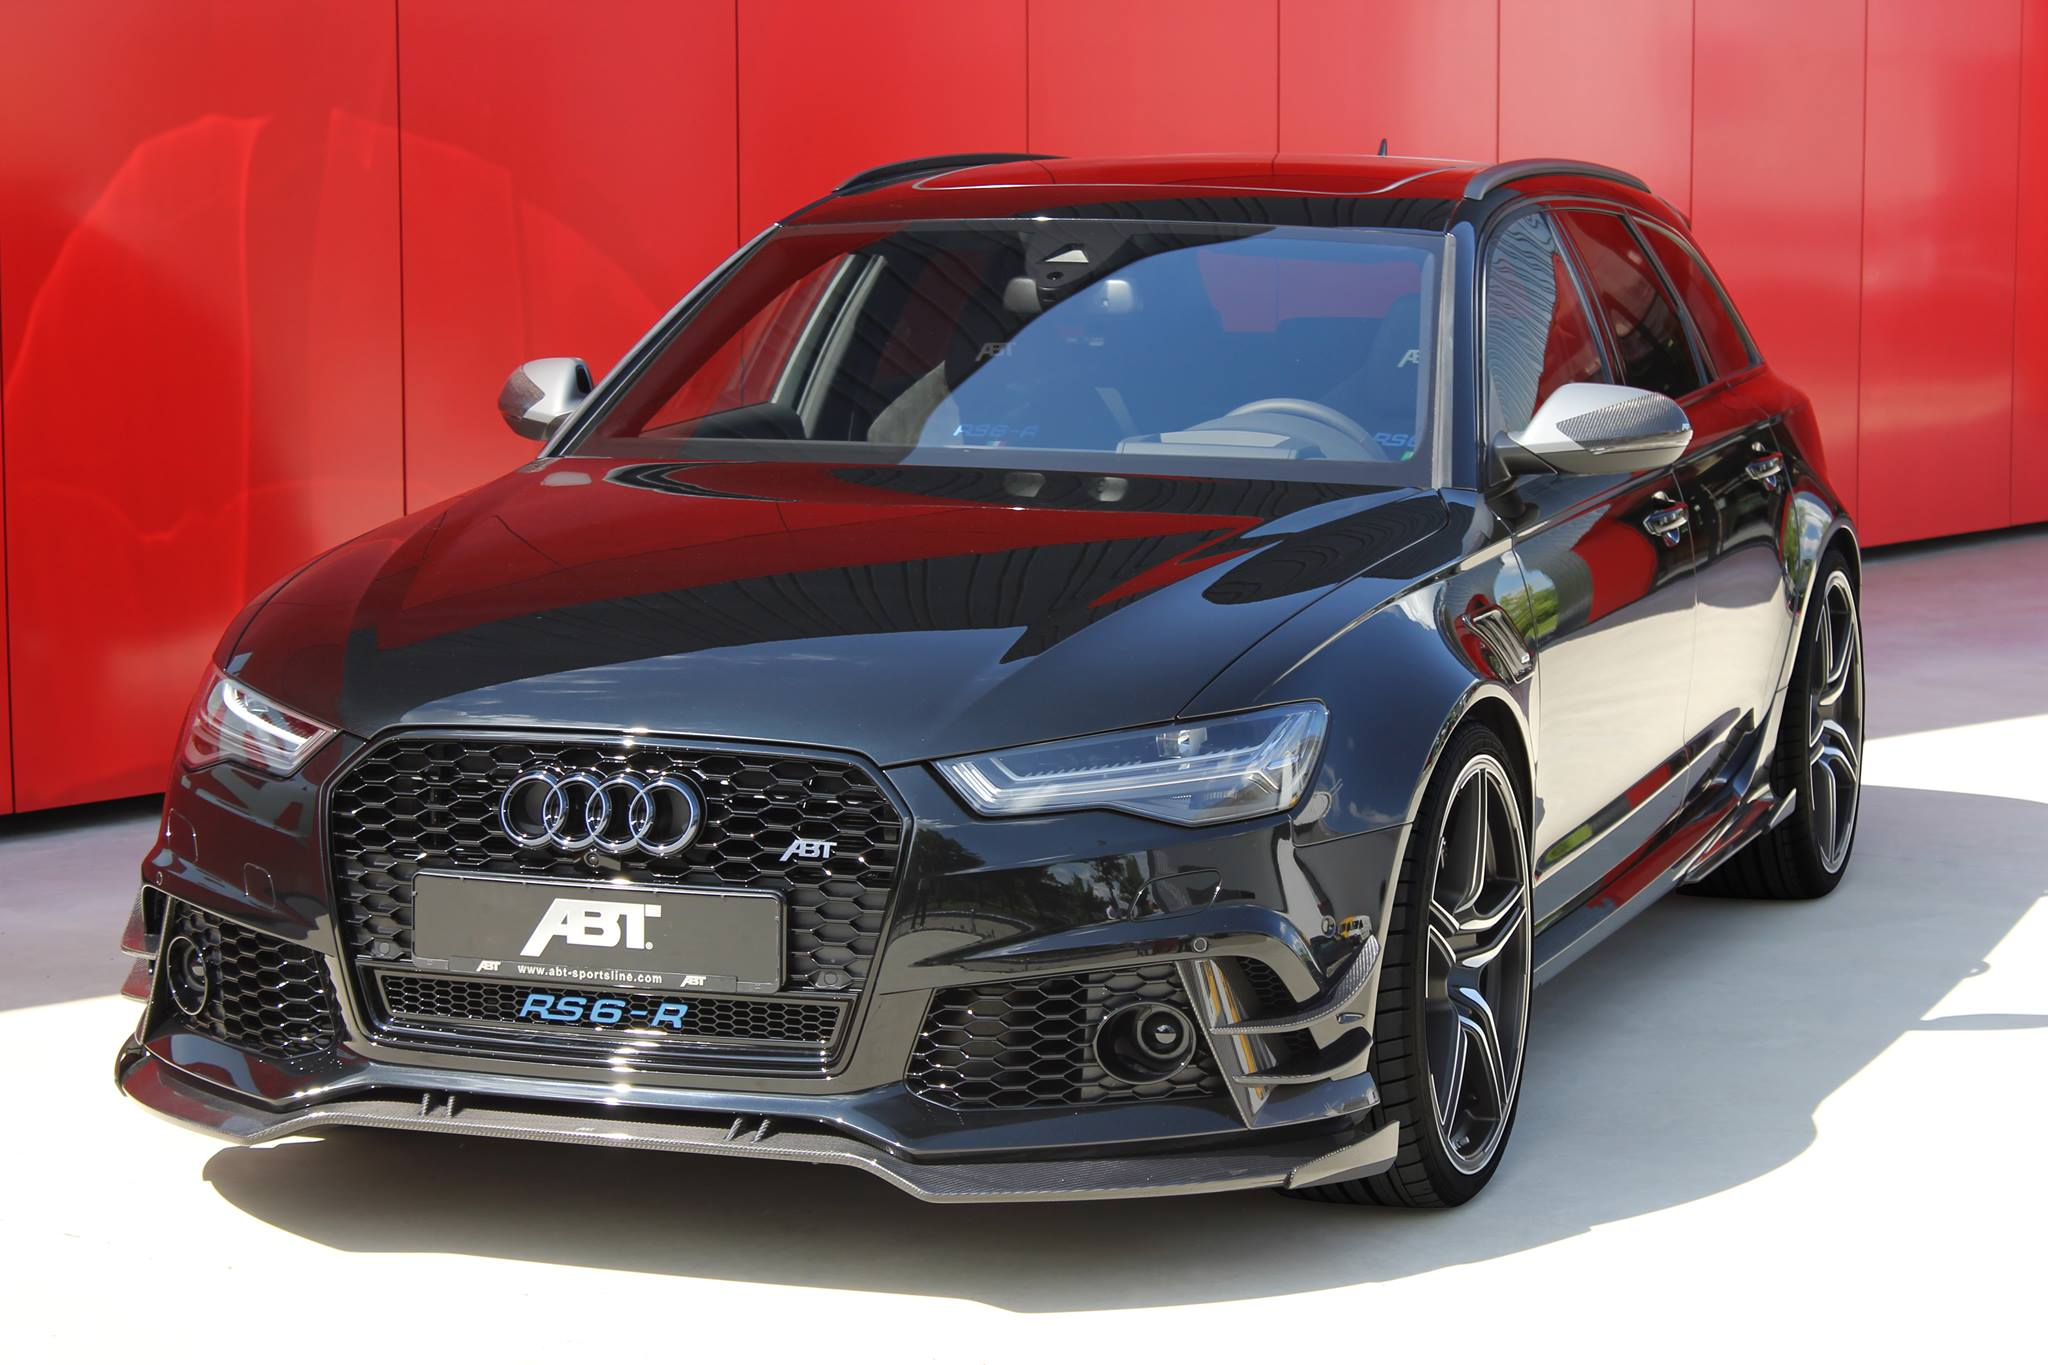 abt rs6 r edizione italiana is another 730 hp audi autoevolution. Black Bedroom Furniture Sets. Home Design Ideas